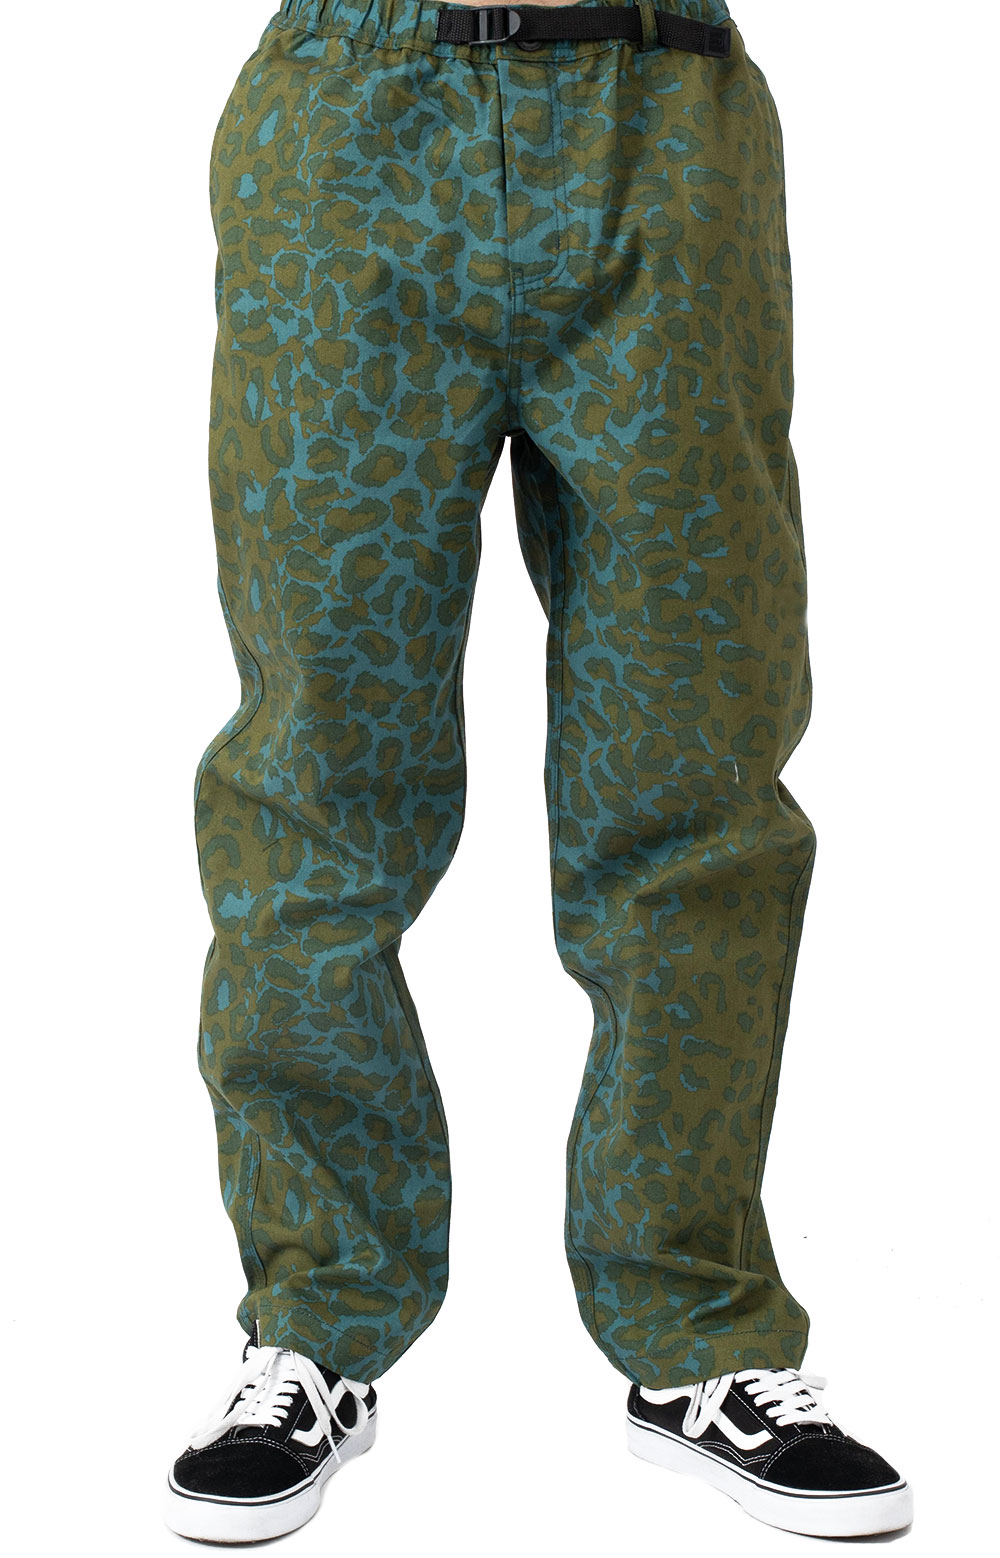 Printed Runyon Easy Pant - Leopard Camo  3